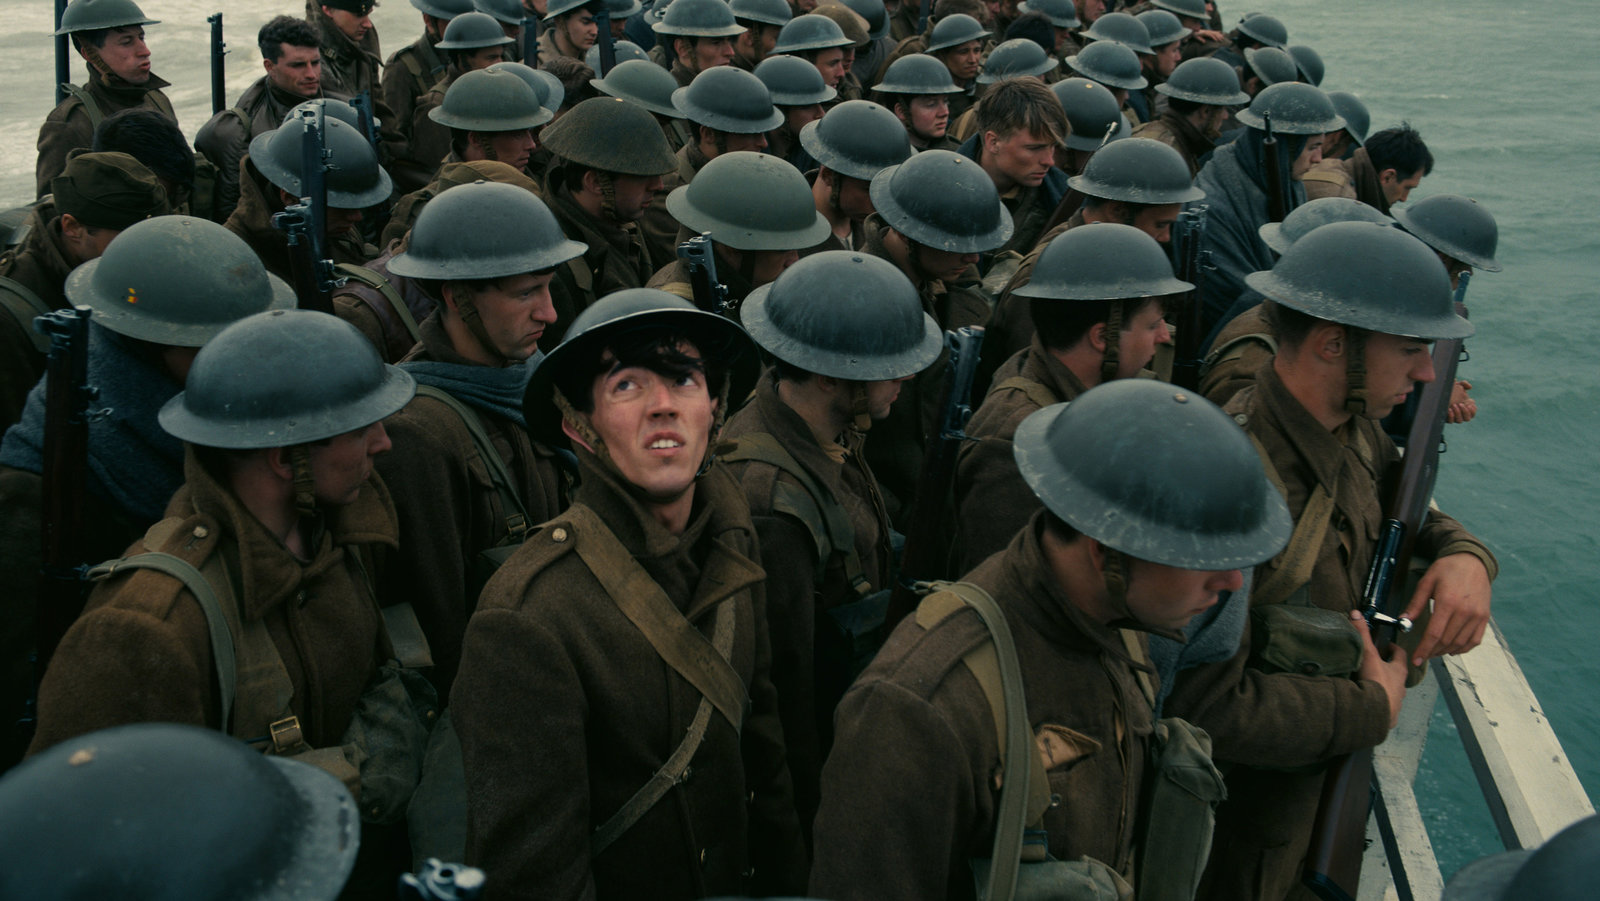 Dunkirk Canale 5